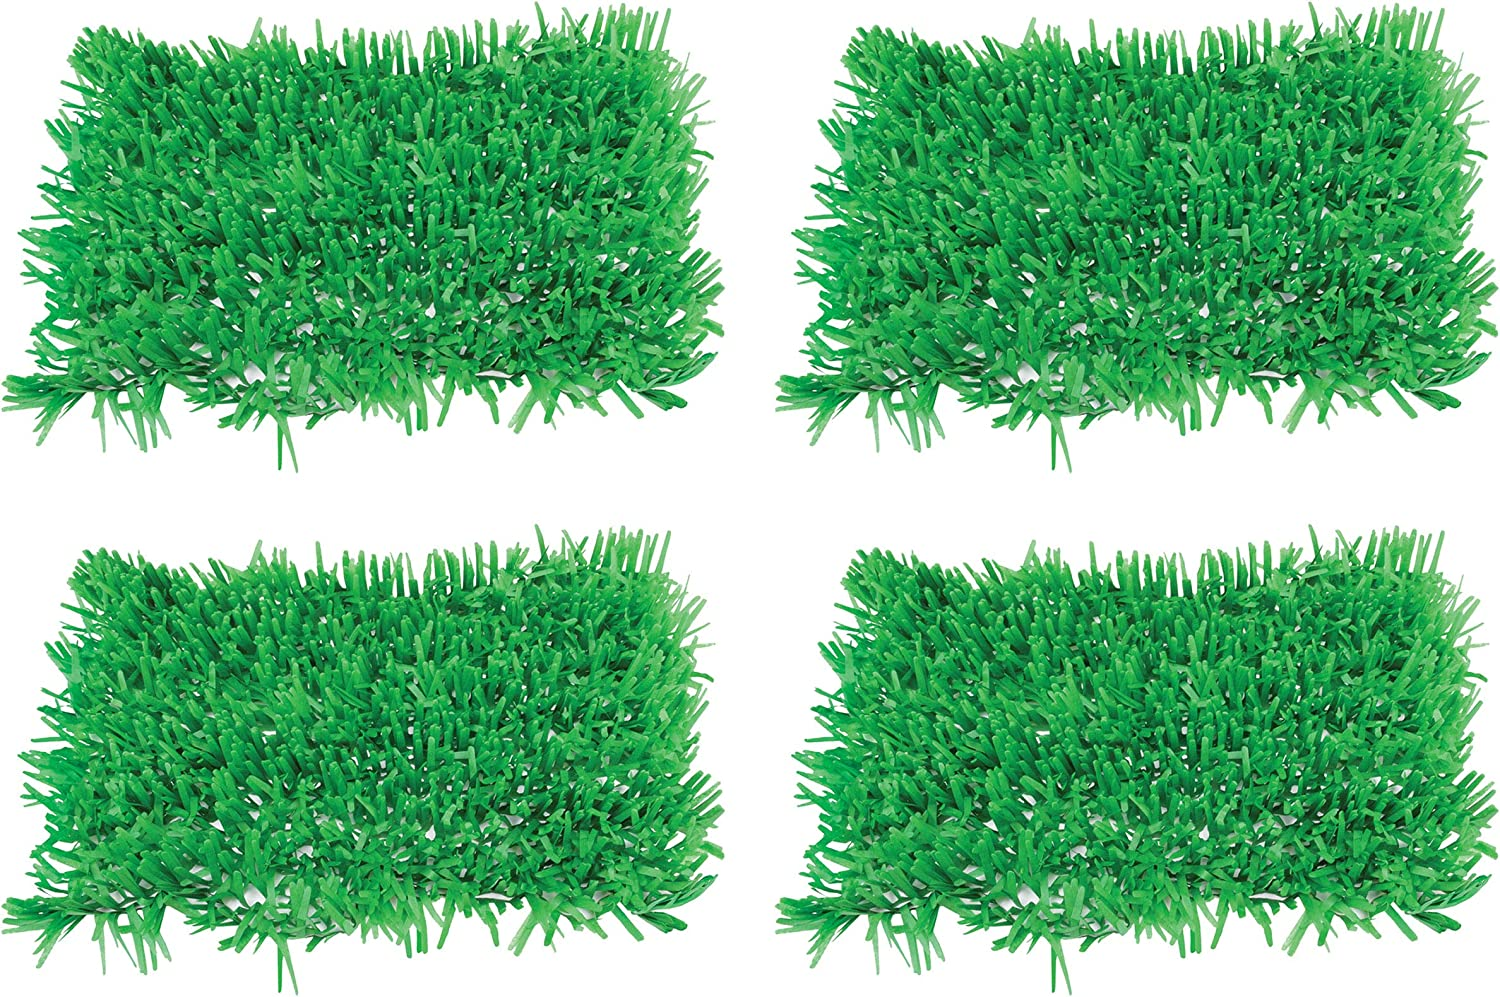 Beistle 4 Piece Green Tissue Paper Grass Mats For Happy Easter And Spring Summer Decorations Celebrations, Fairy Garden Luau Theme Party Supplies